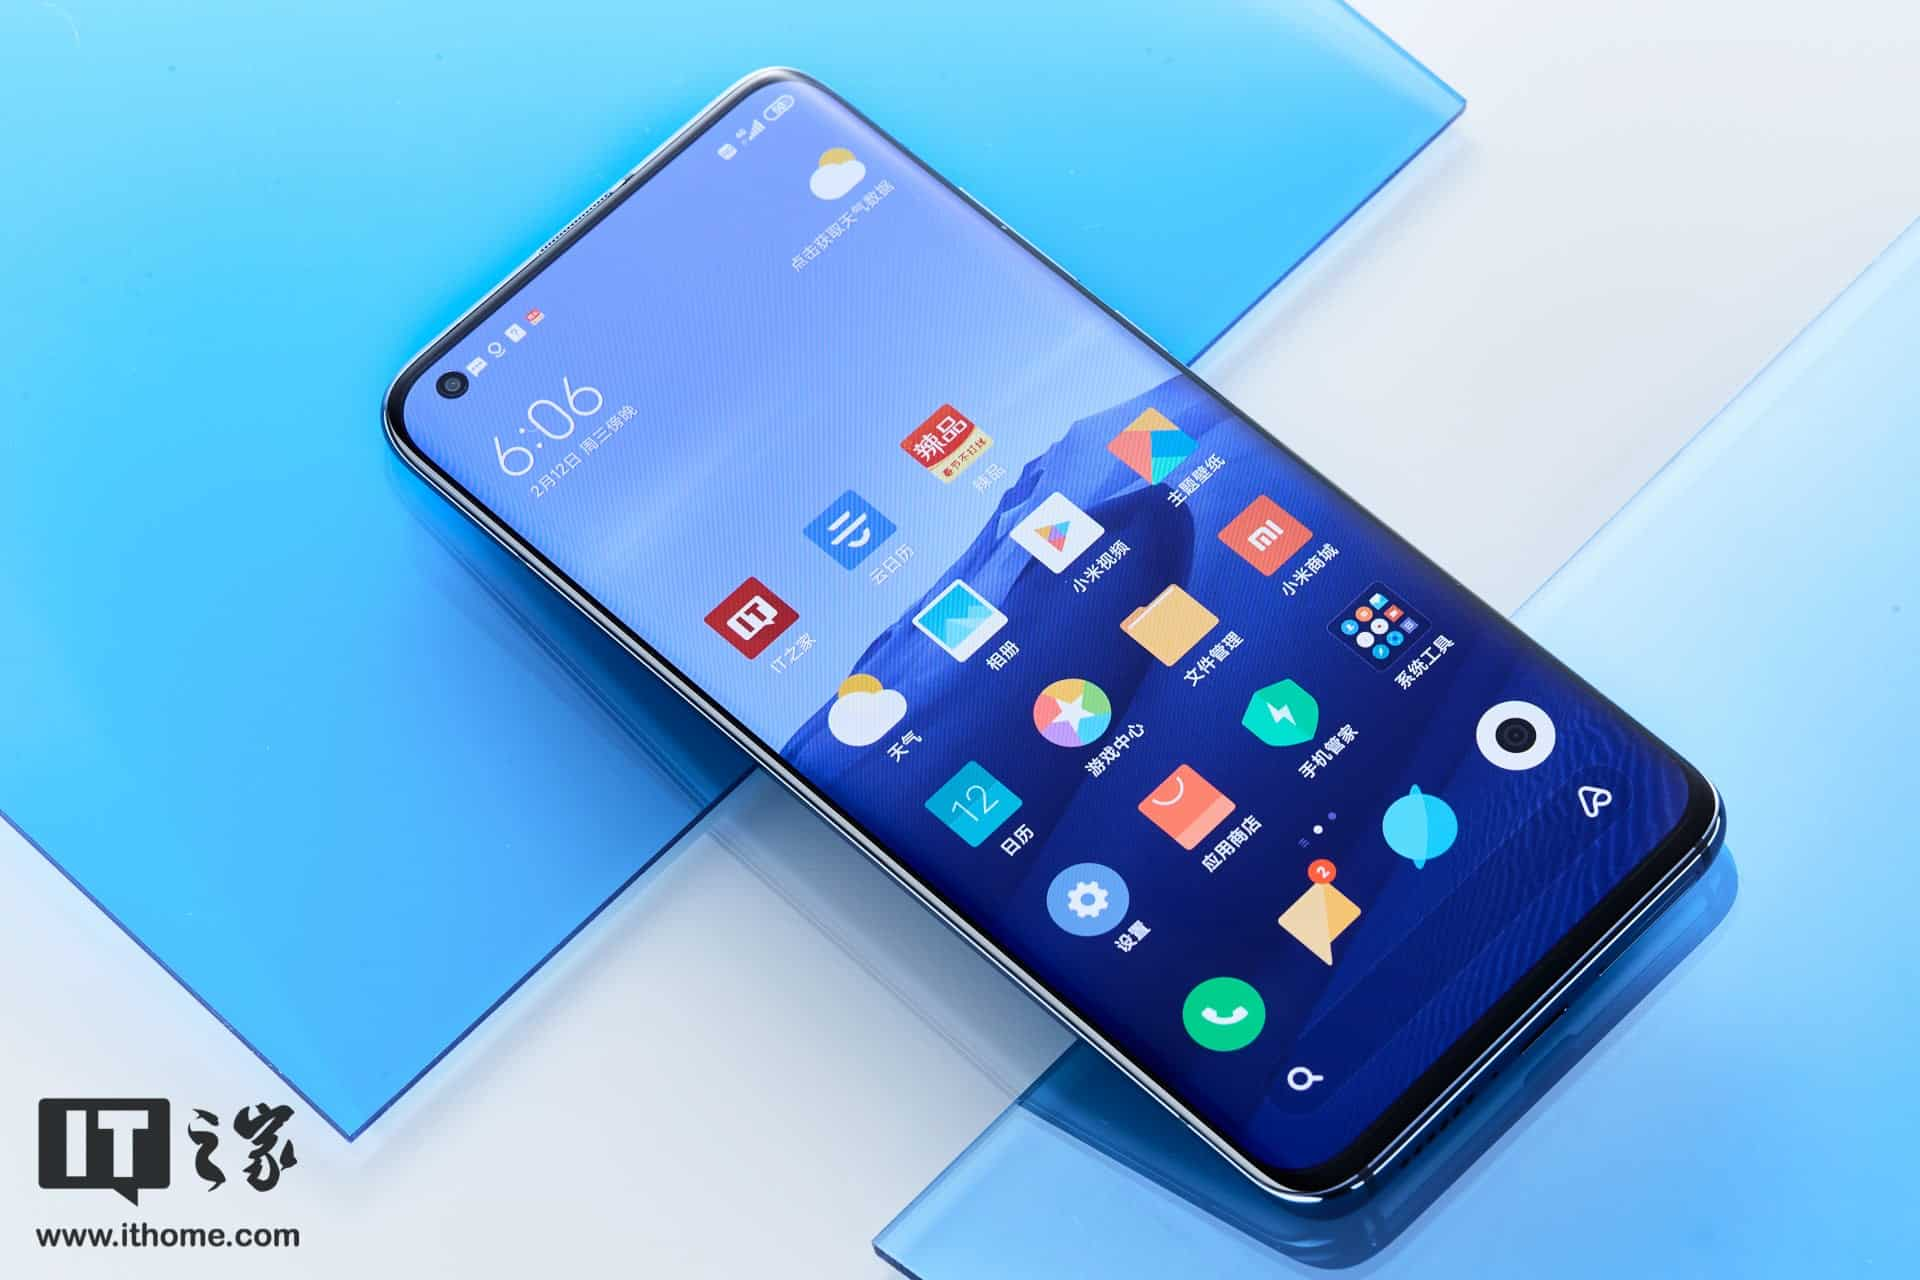 Xiaomi Mi 10 / Pro MIUI 11 development version to arrive from February 17 - Gizchina.com